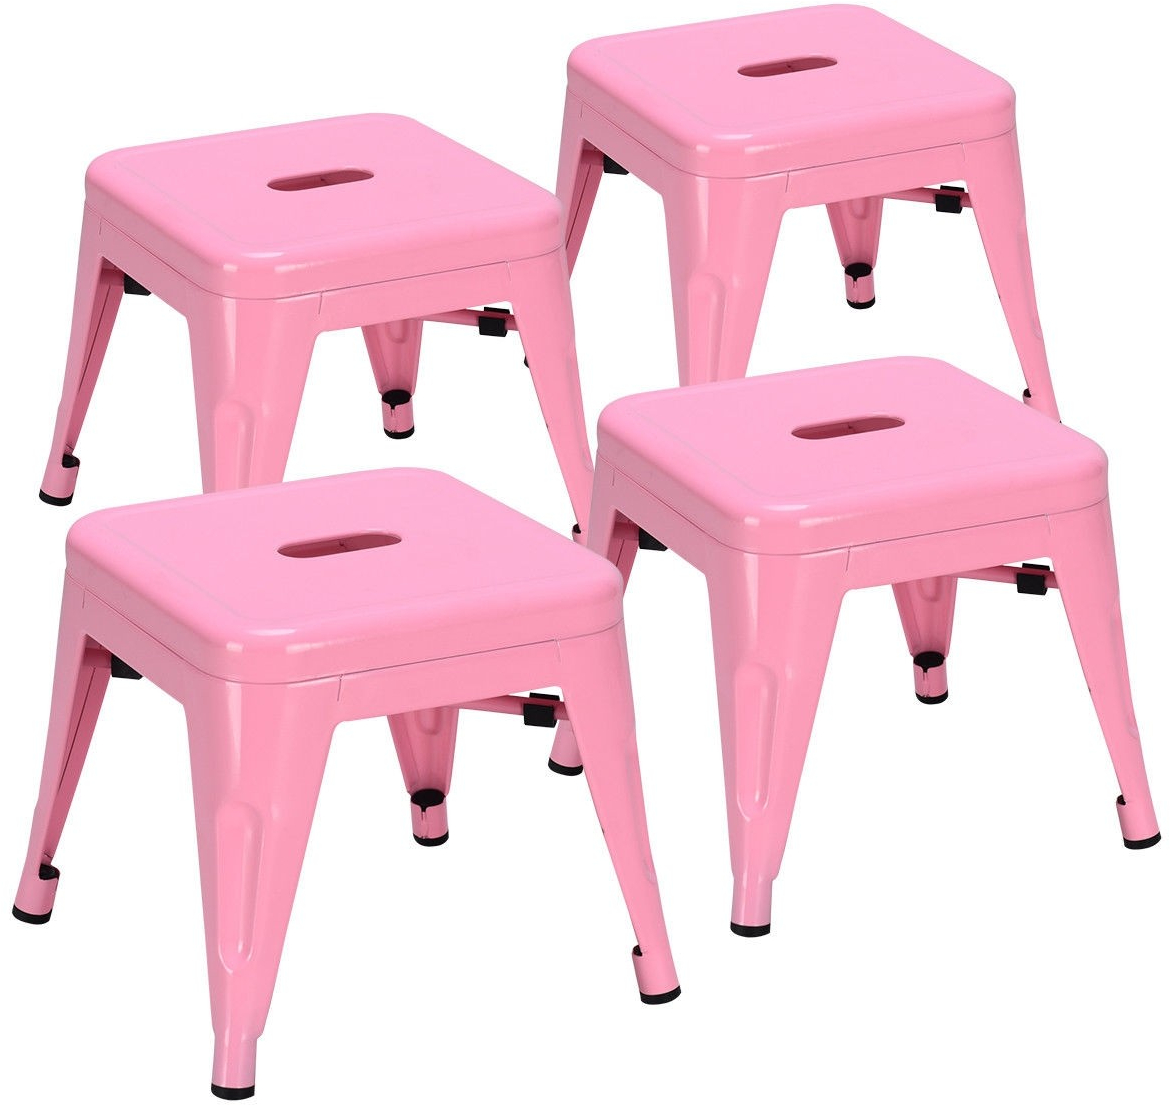 pink kids chair swivel kitchen set of 4 lightweight stackable metal tolix stools classroom